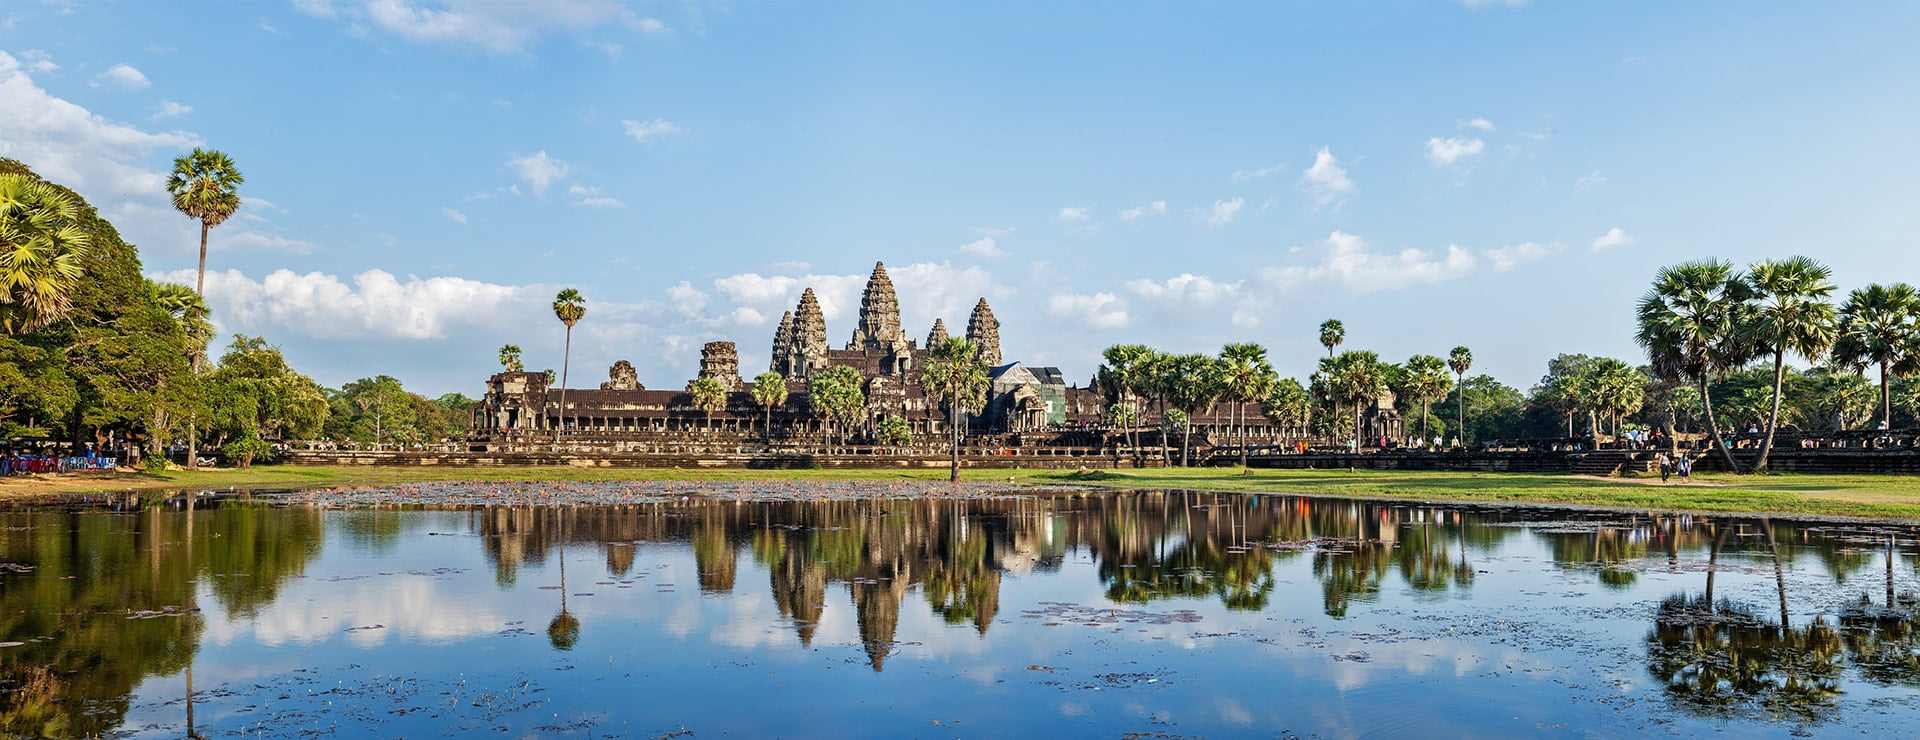 Before Your Cambodia Trip Starts, You Should Know About These Cultural Facts